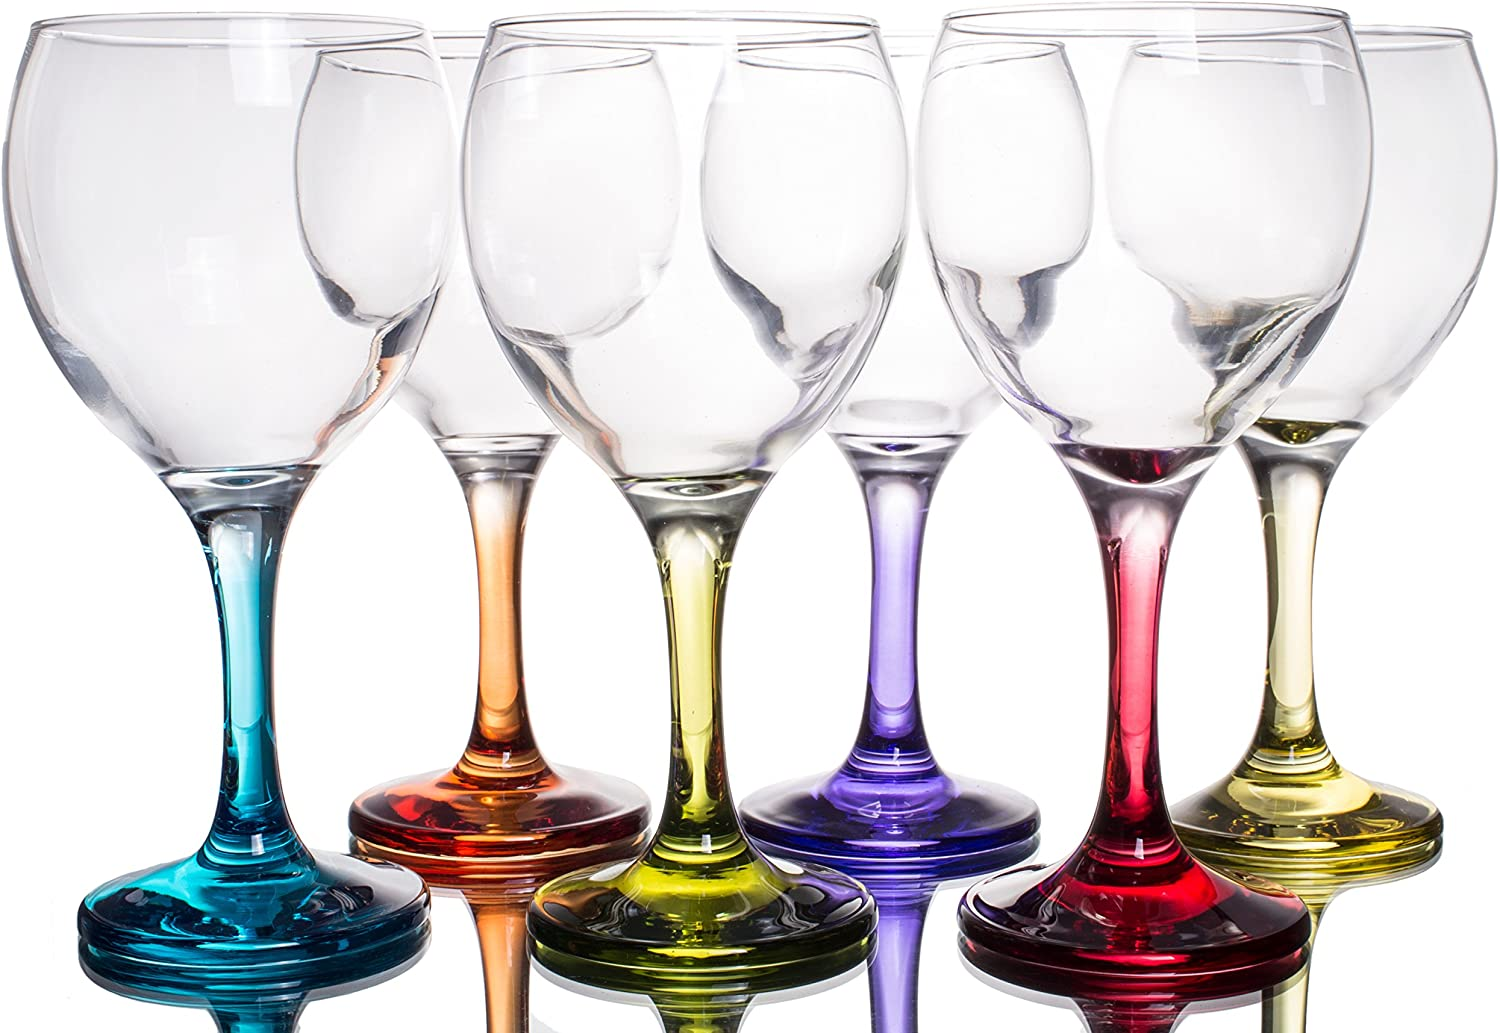 Orion Multi Colored Party Stemmed Wine Glasses, 12 oz, Set of 6